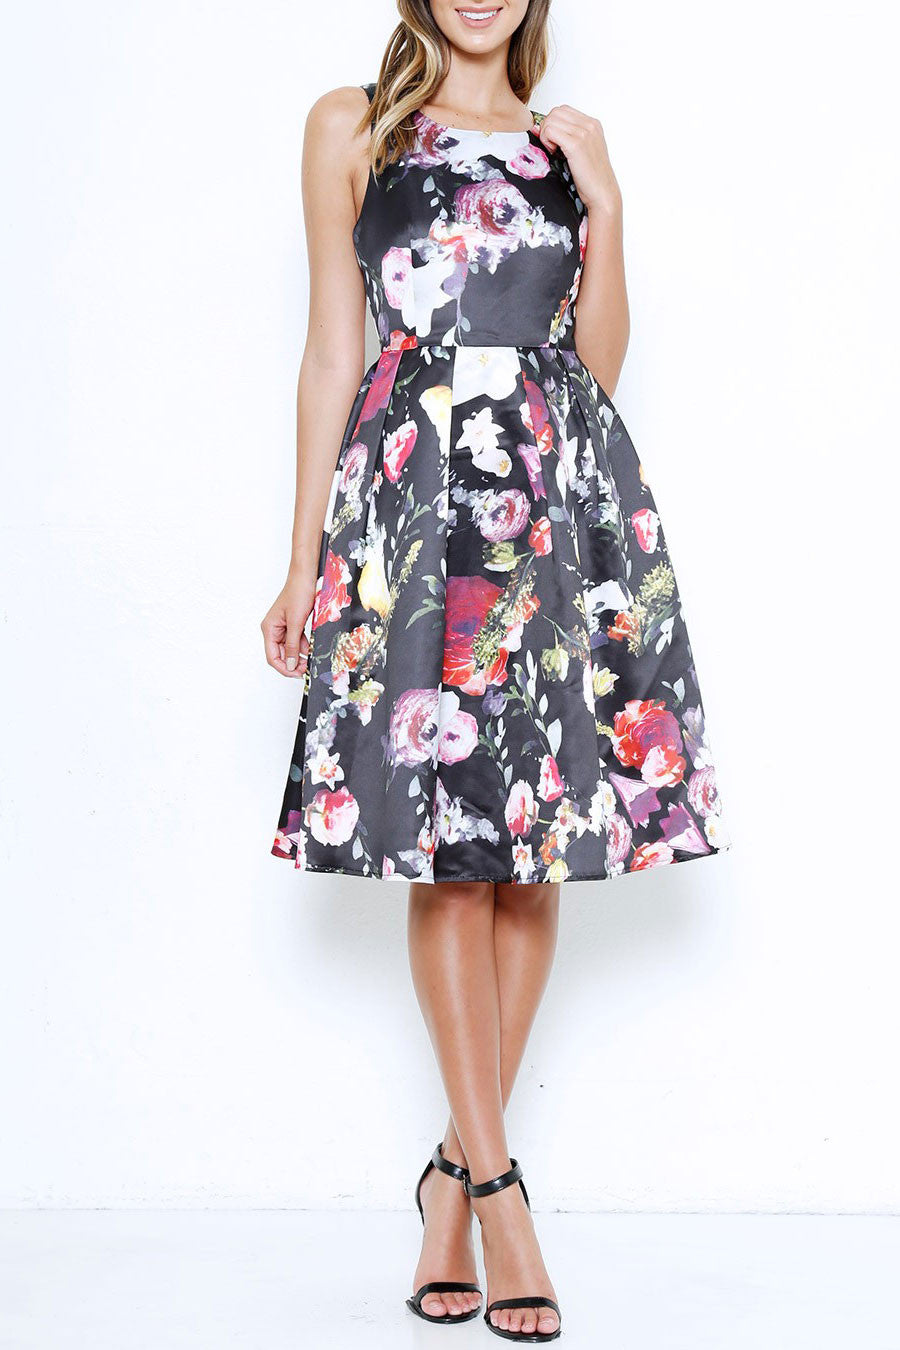 Memdalet women 39 s sleeveless black floral print full for Floral print dresses for weddings